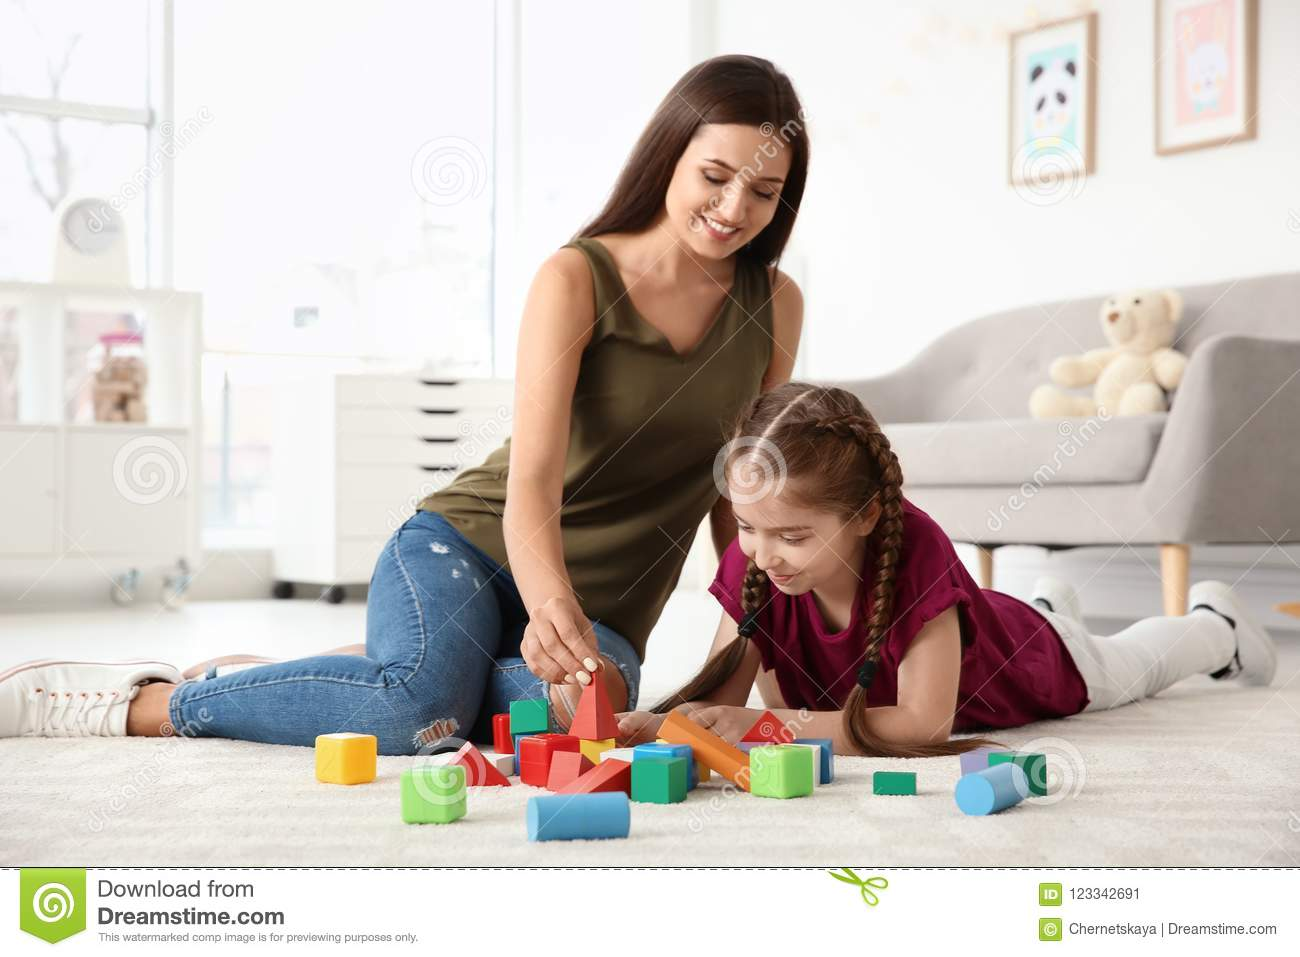 Young woman and little girl with autistic disorder playing